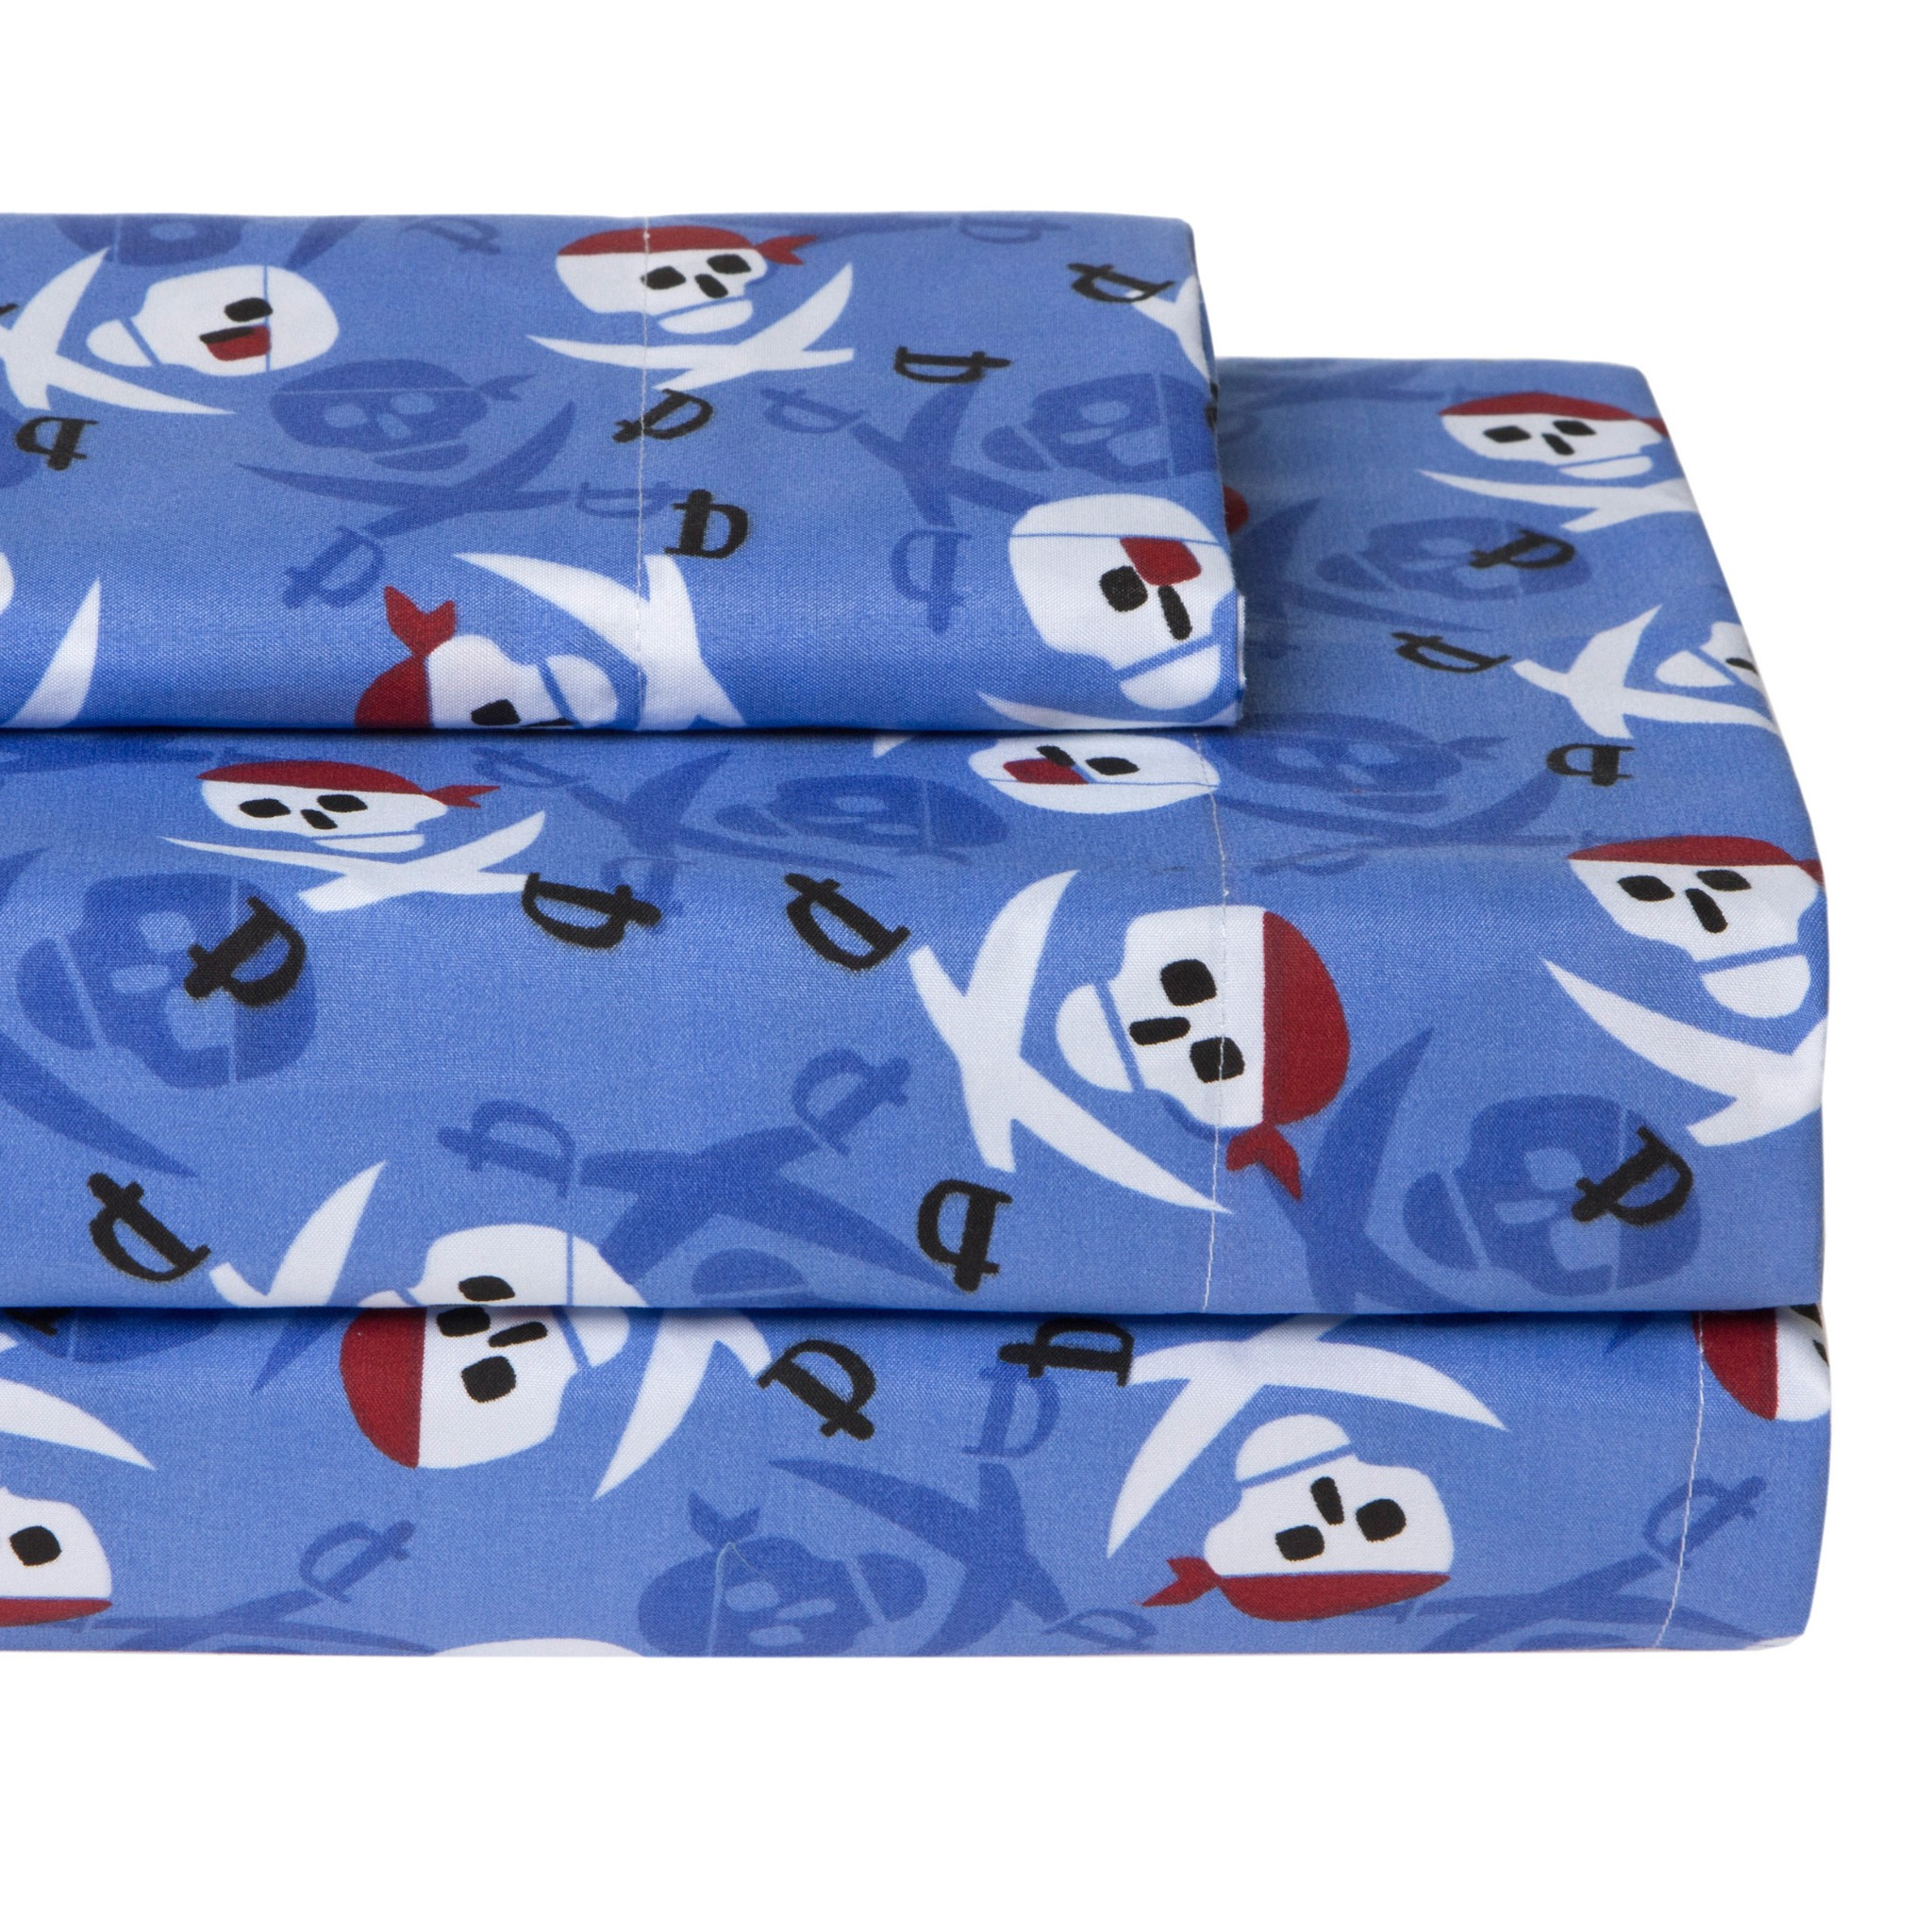 NEW Twin Full Bed Blue Black Red White Pirate Skulls Swords 4 pc Sheet Set  NWT. NEW Twin Full Bed Blue Black Red White Pirate Skulls Swords 4 pc